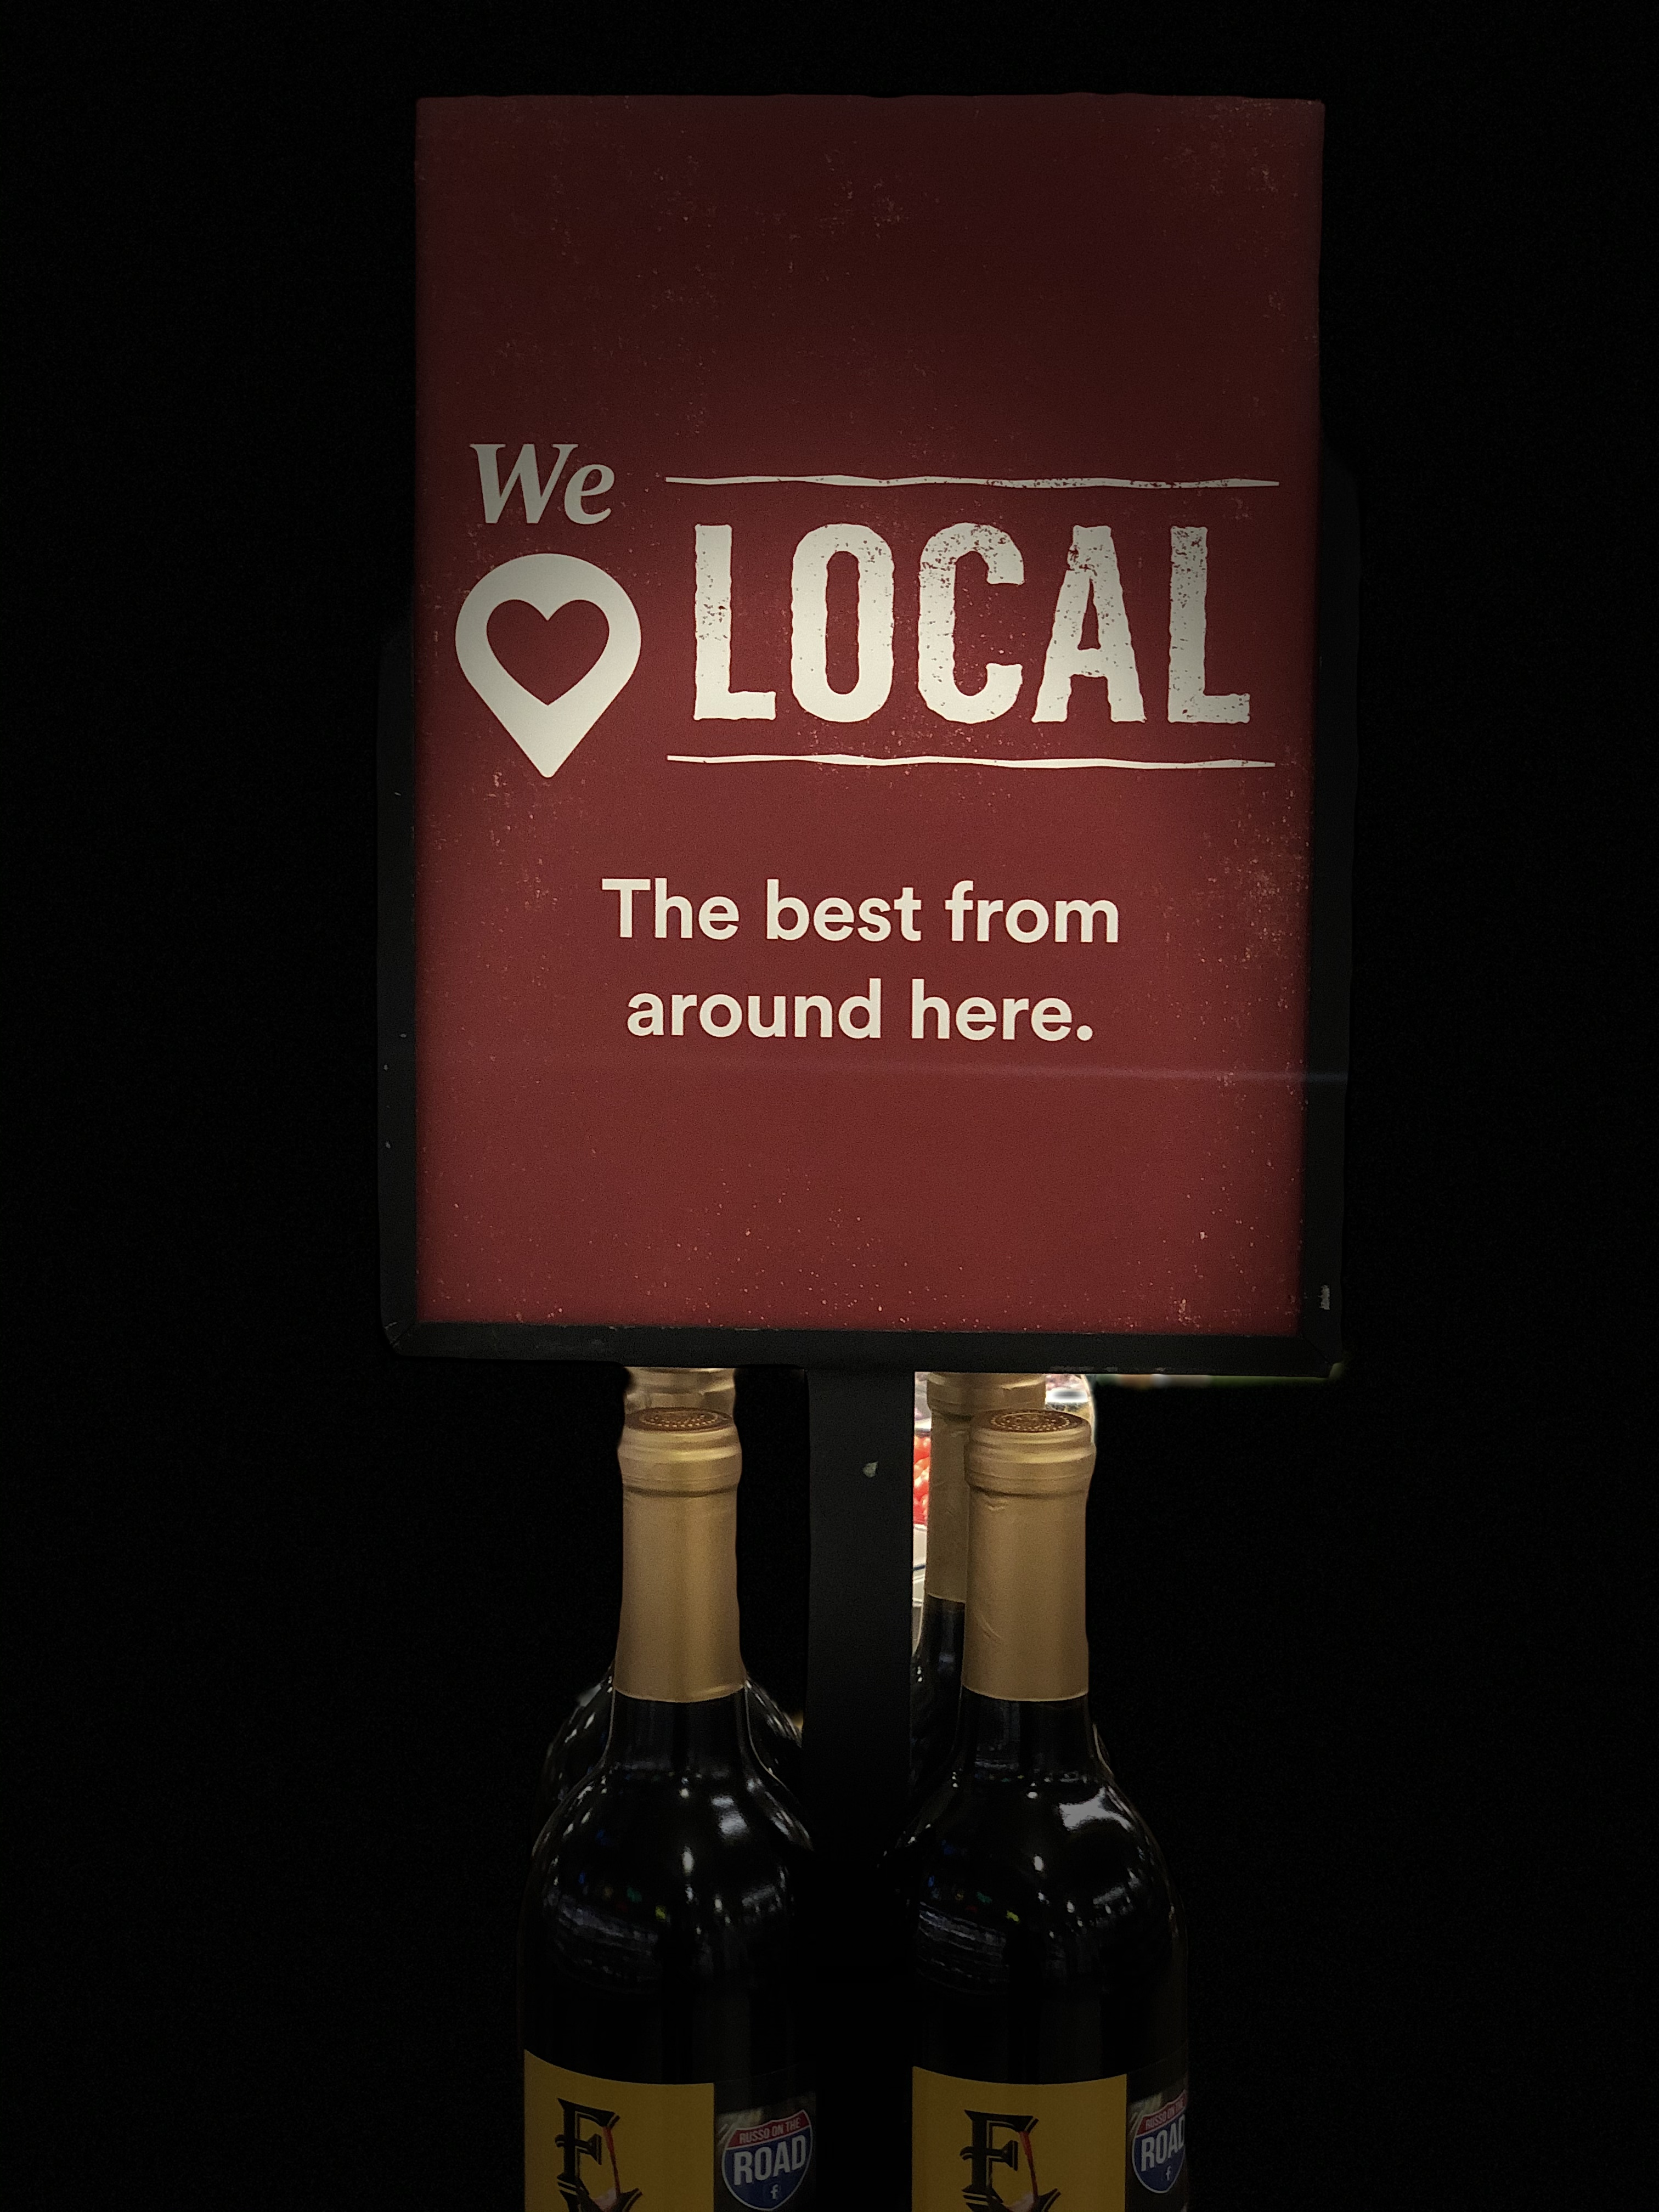 Wholefoods Nashua Expands our Wine Offering For You